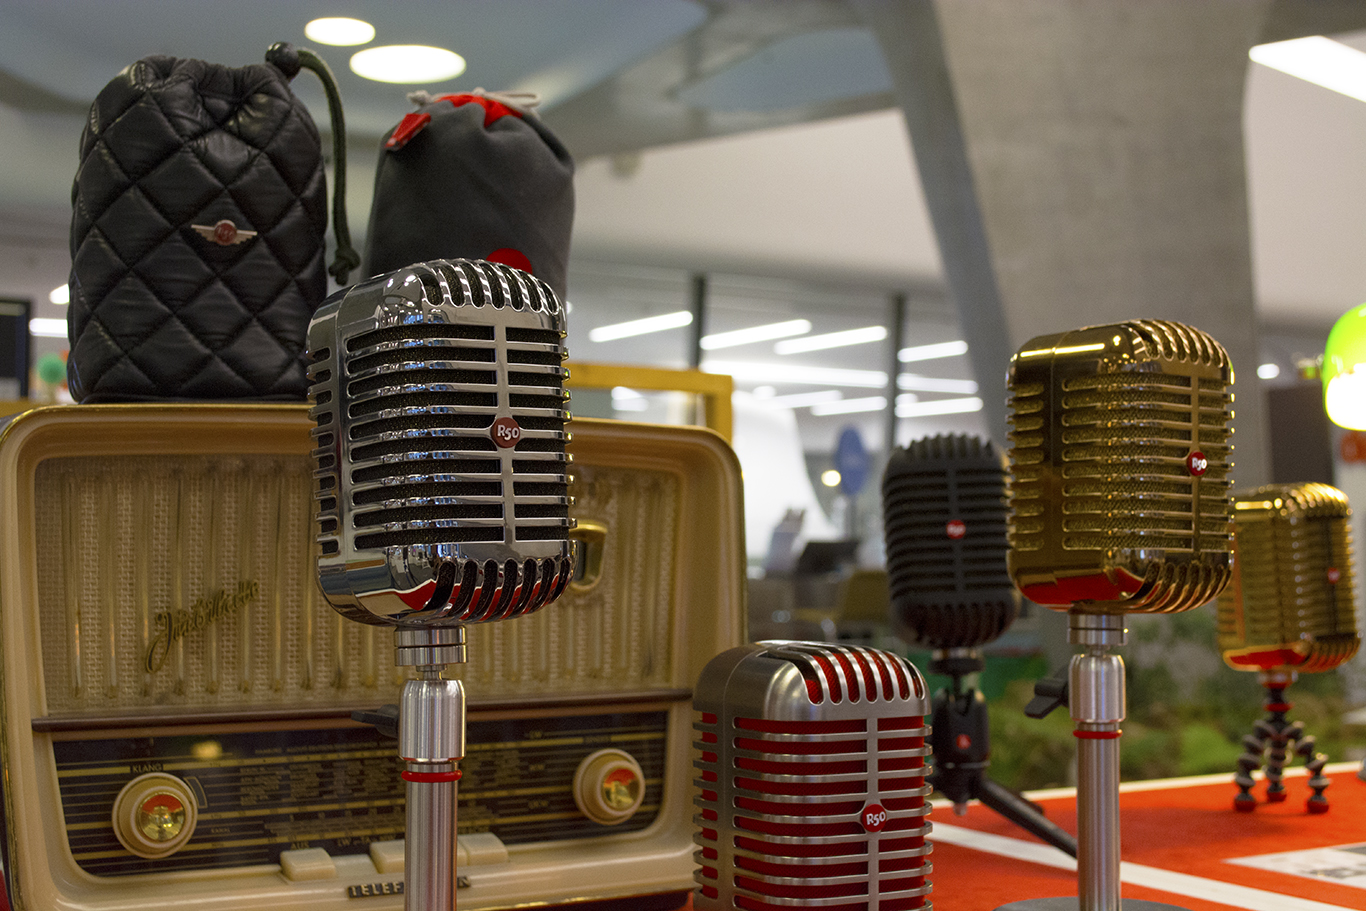 A set of vintage microphones on display at the Dongdaemun Design Plaza in Seoul, South Korea. The display is a part of an exhibit on retro fashion.(CHRISTOPHER CAMERON/THE STATESMAN)